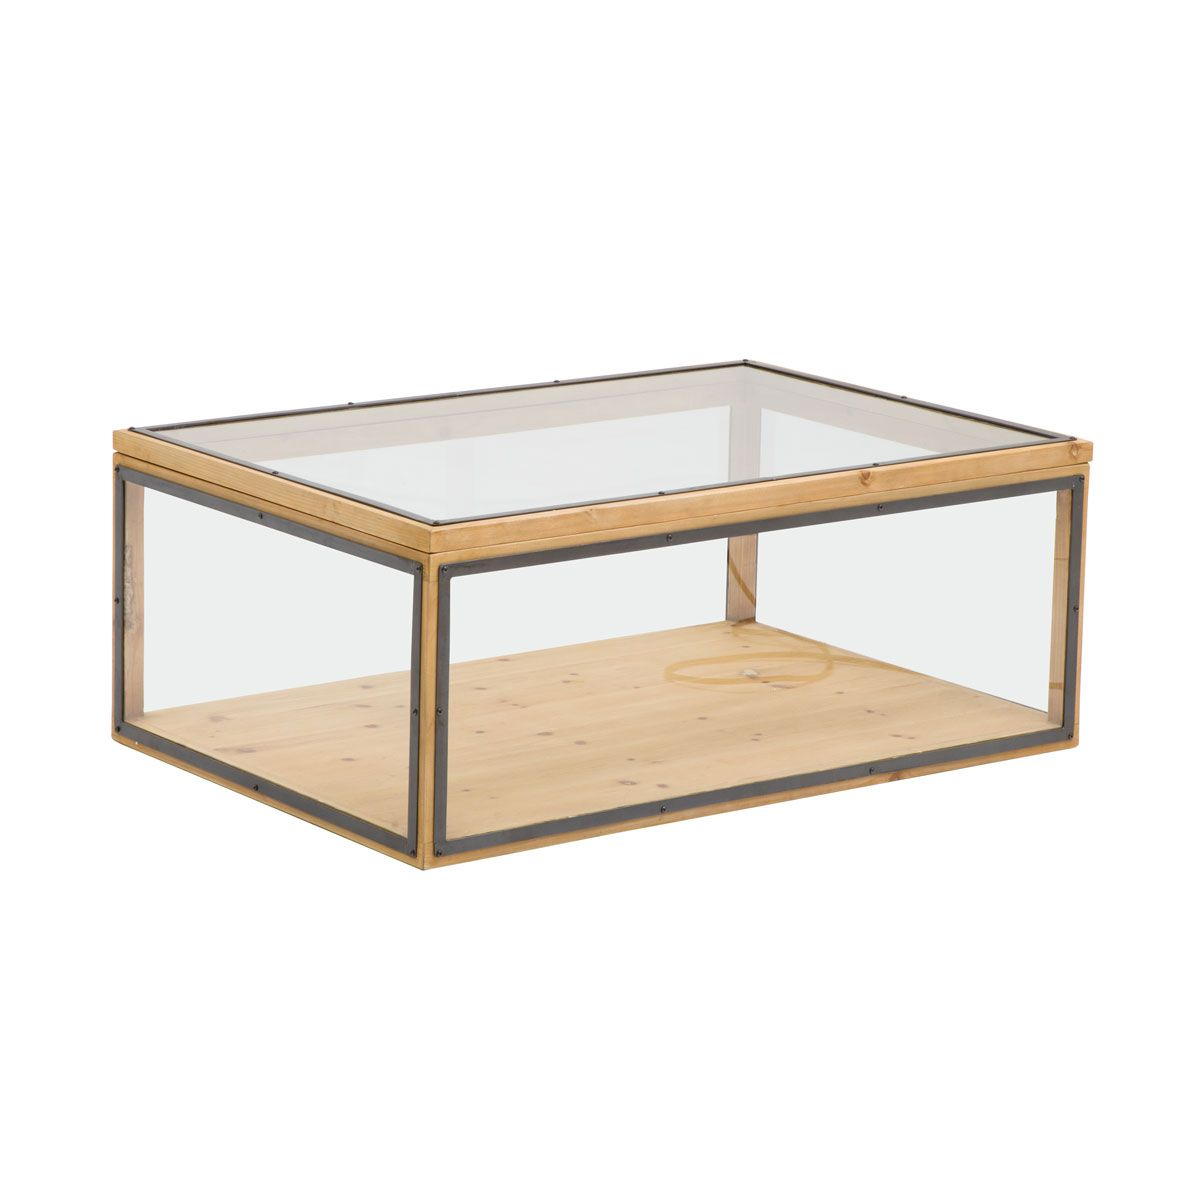 Table Basse Coffre Vitre Plateau Relevable In 2020 Table Coffee Table Decor